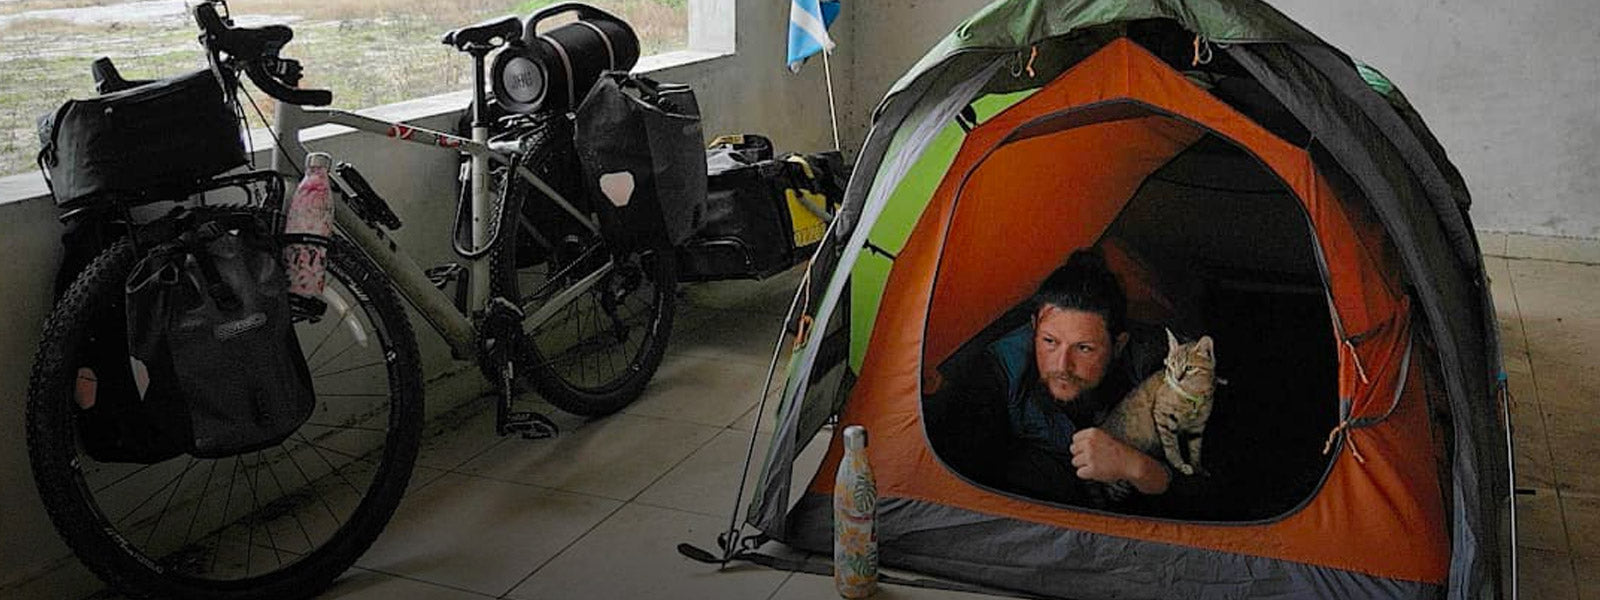 Meet The Man Who is Bikepacking His Way Around The World With A Cat